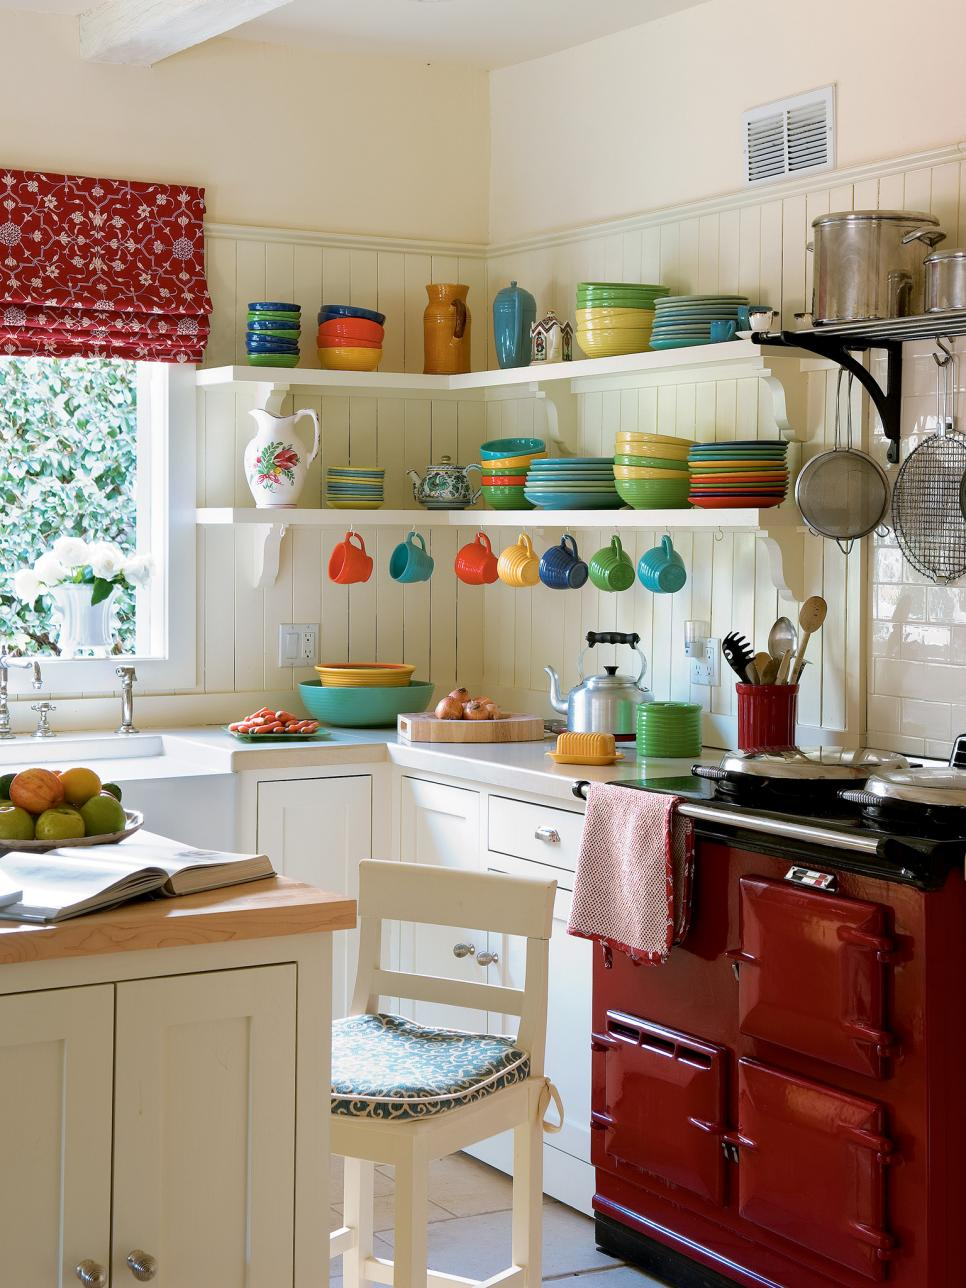 pictures of small kitchen design ideas from hgtv hgtv - Small Home Designs Ideas